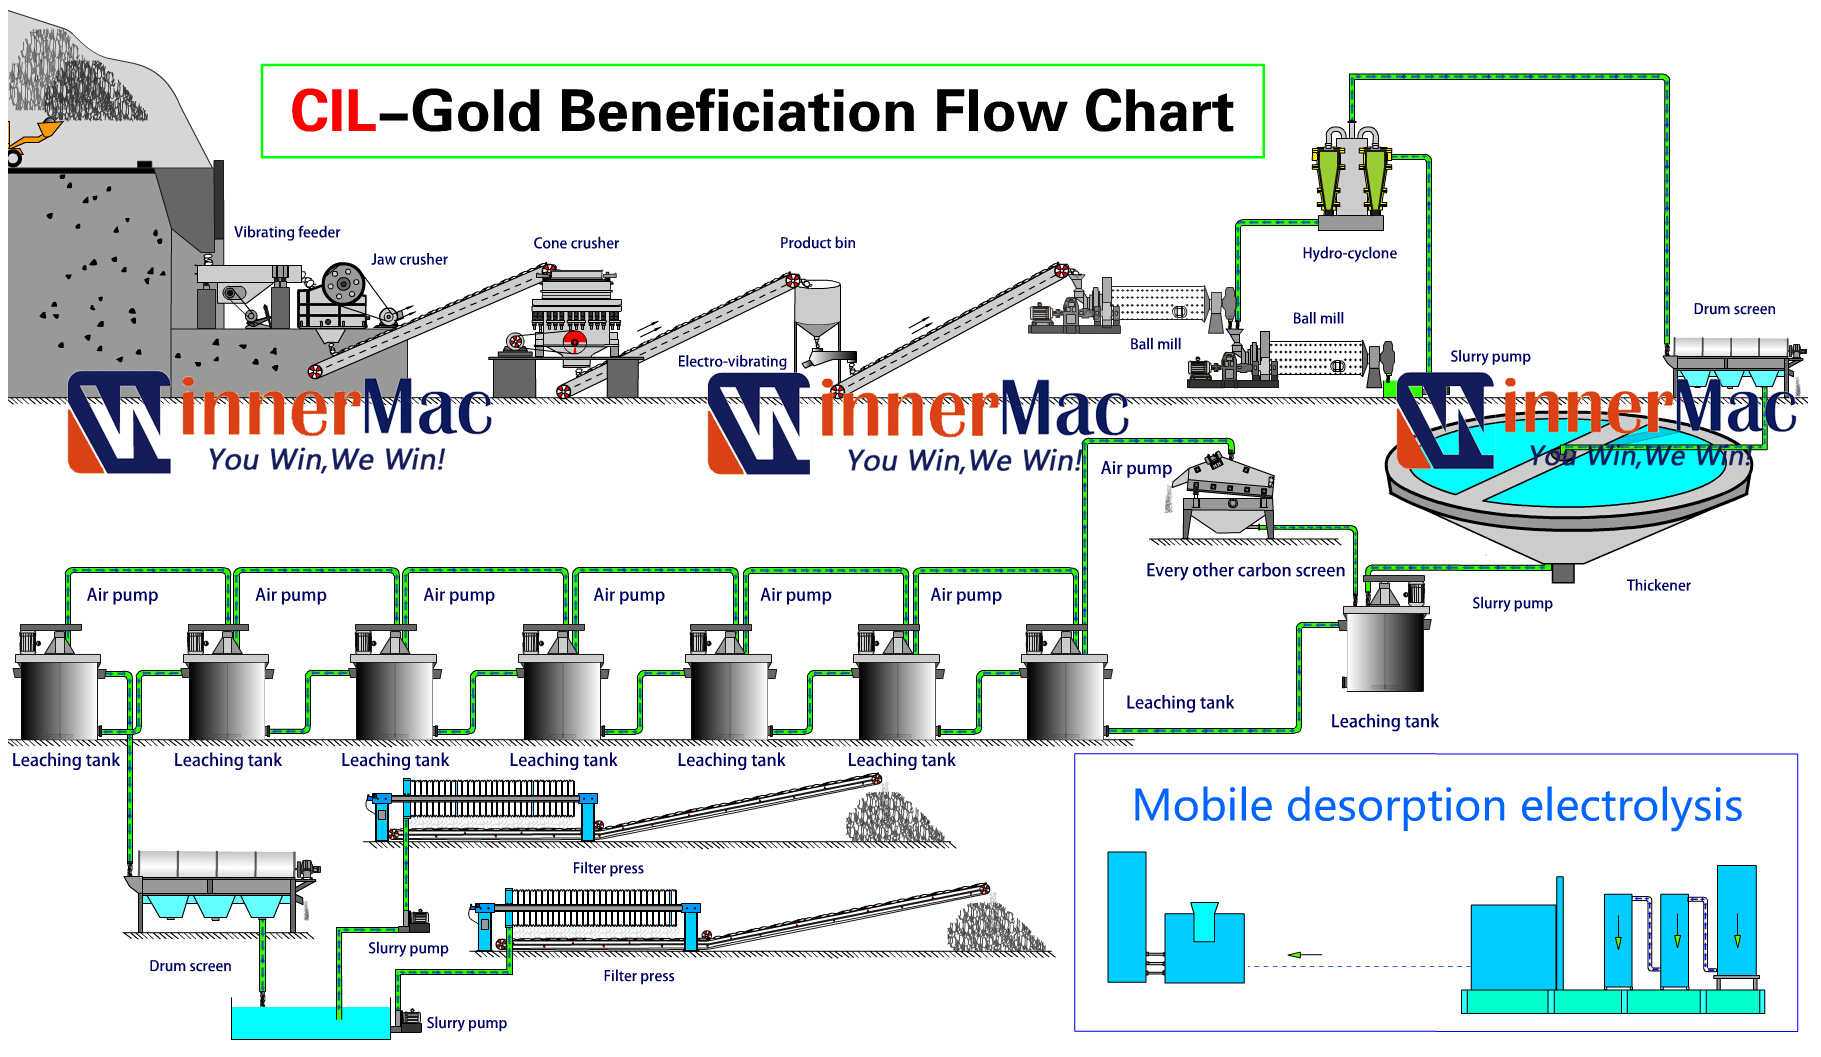 Cil gold beneficiation plant the gold loaded carbon after electrolysis process could return to last stage in the flow chart for reprocessing nvjuhfo Image collections